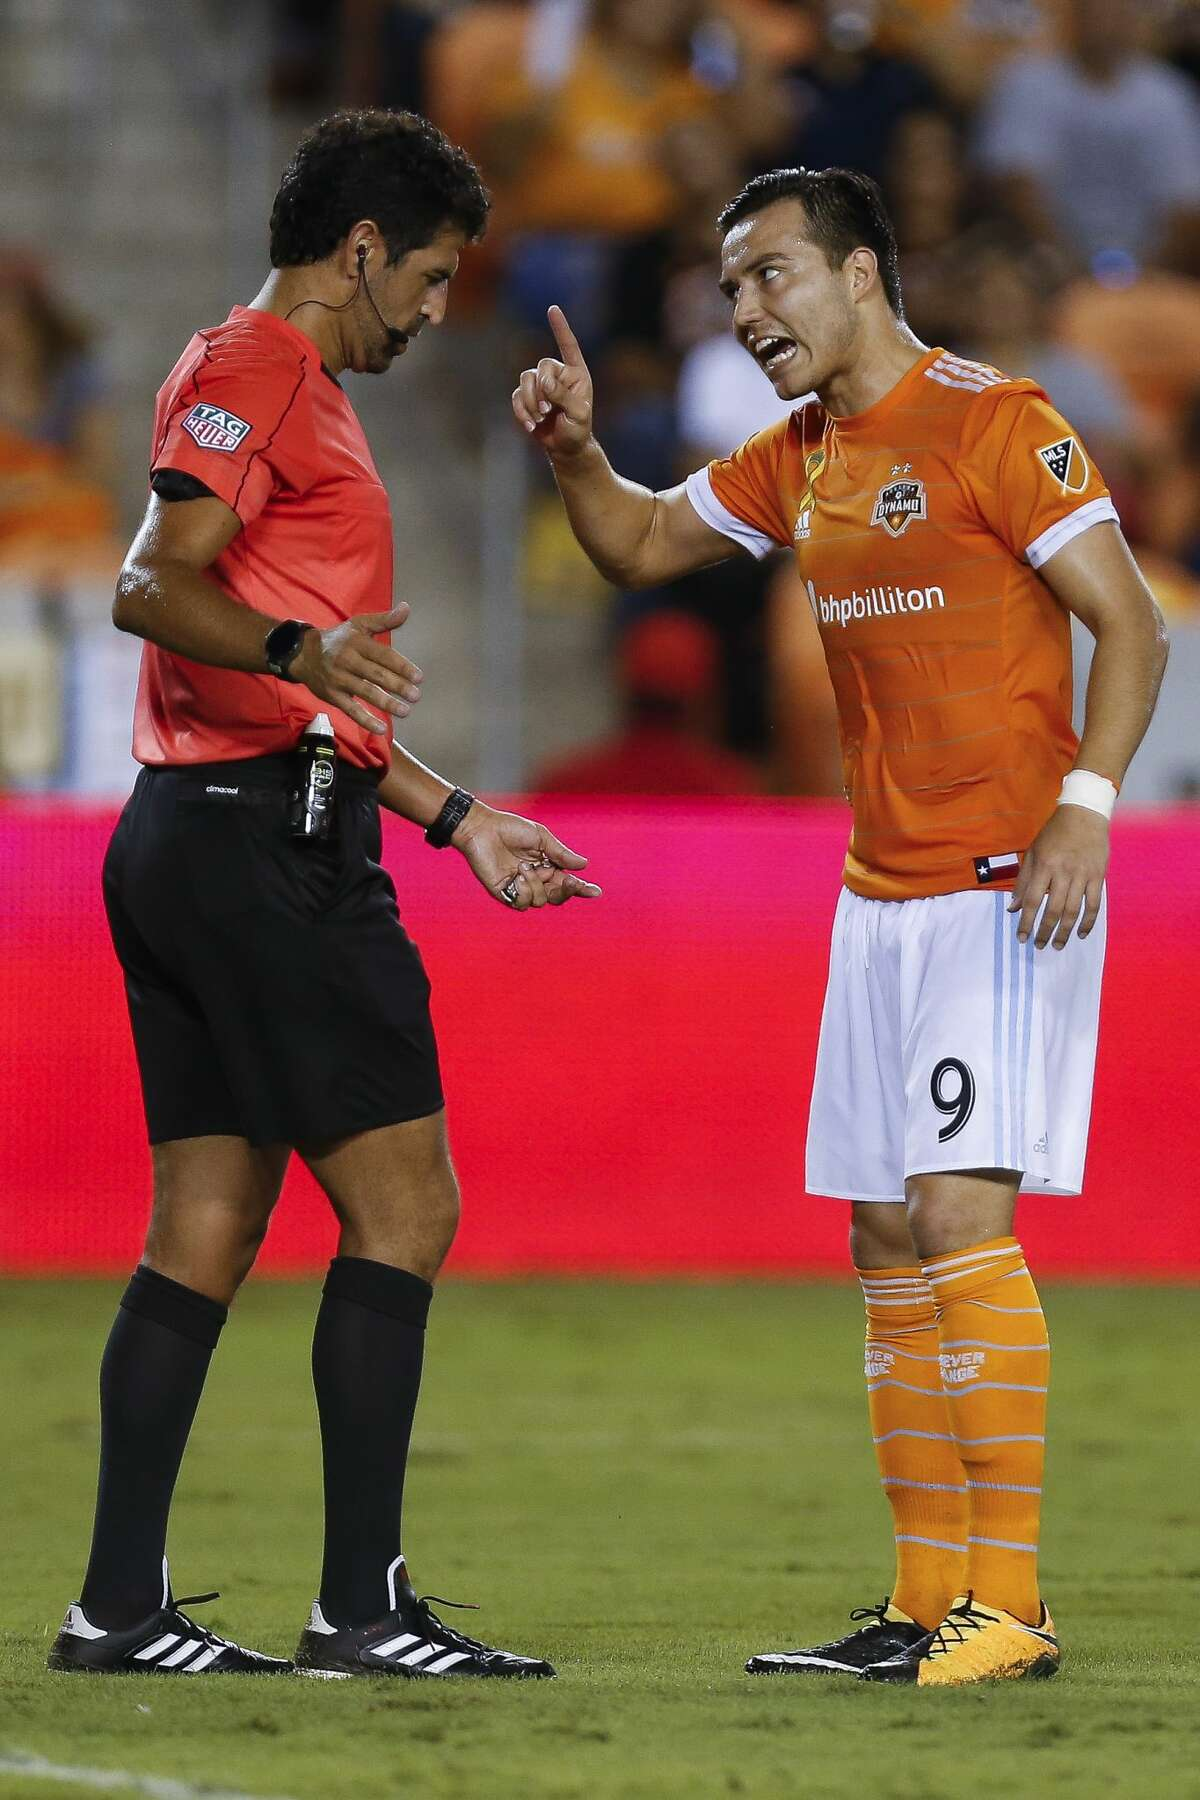 Houston Dynamo forward Erick Torres (9) argues with a referee as the Houston Dynamo take on the Los Angeles Galaxy at BBVA Compass Stadium Wednesday, Sept. 27, 2017 in Houston. ( Michael Ciaglo / Houston Chronicle)